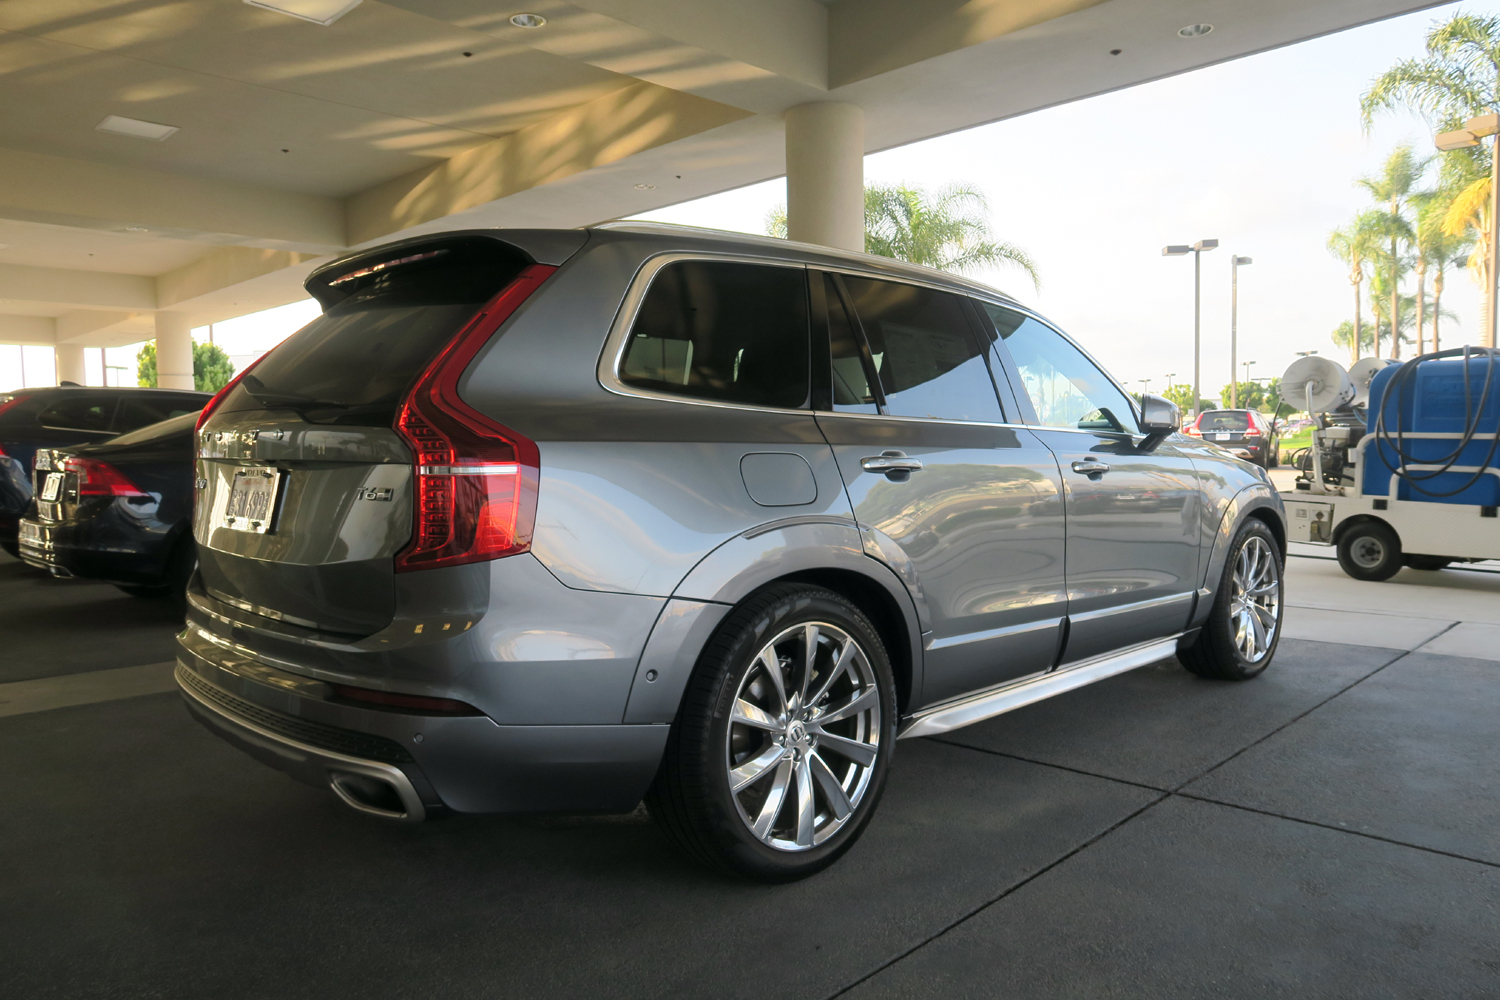 First Drive: 2016 Volvo XC90 T6 AWD Inscription - YouWheel.com - Your Ultimate and Professional ...